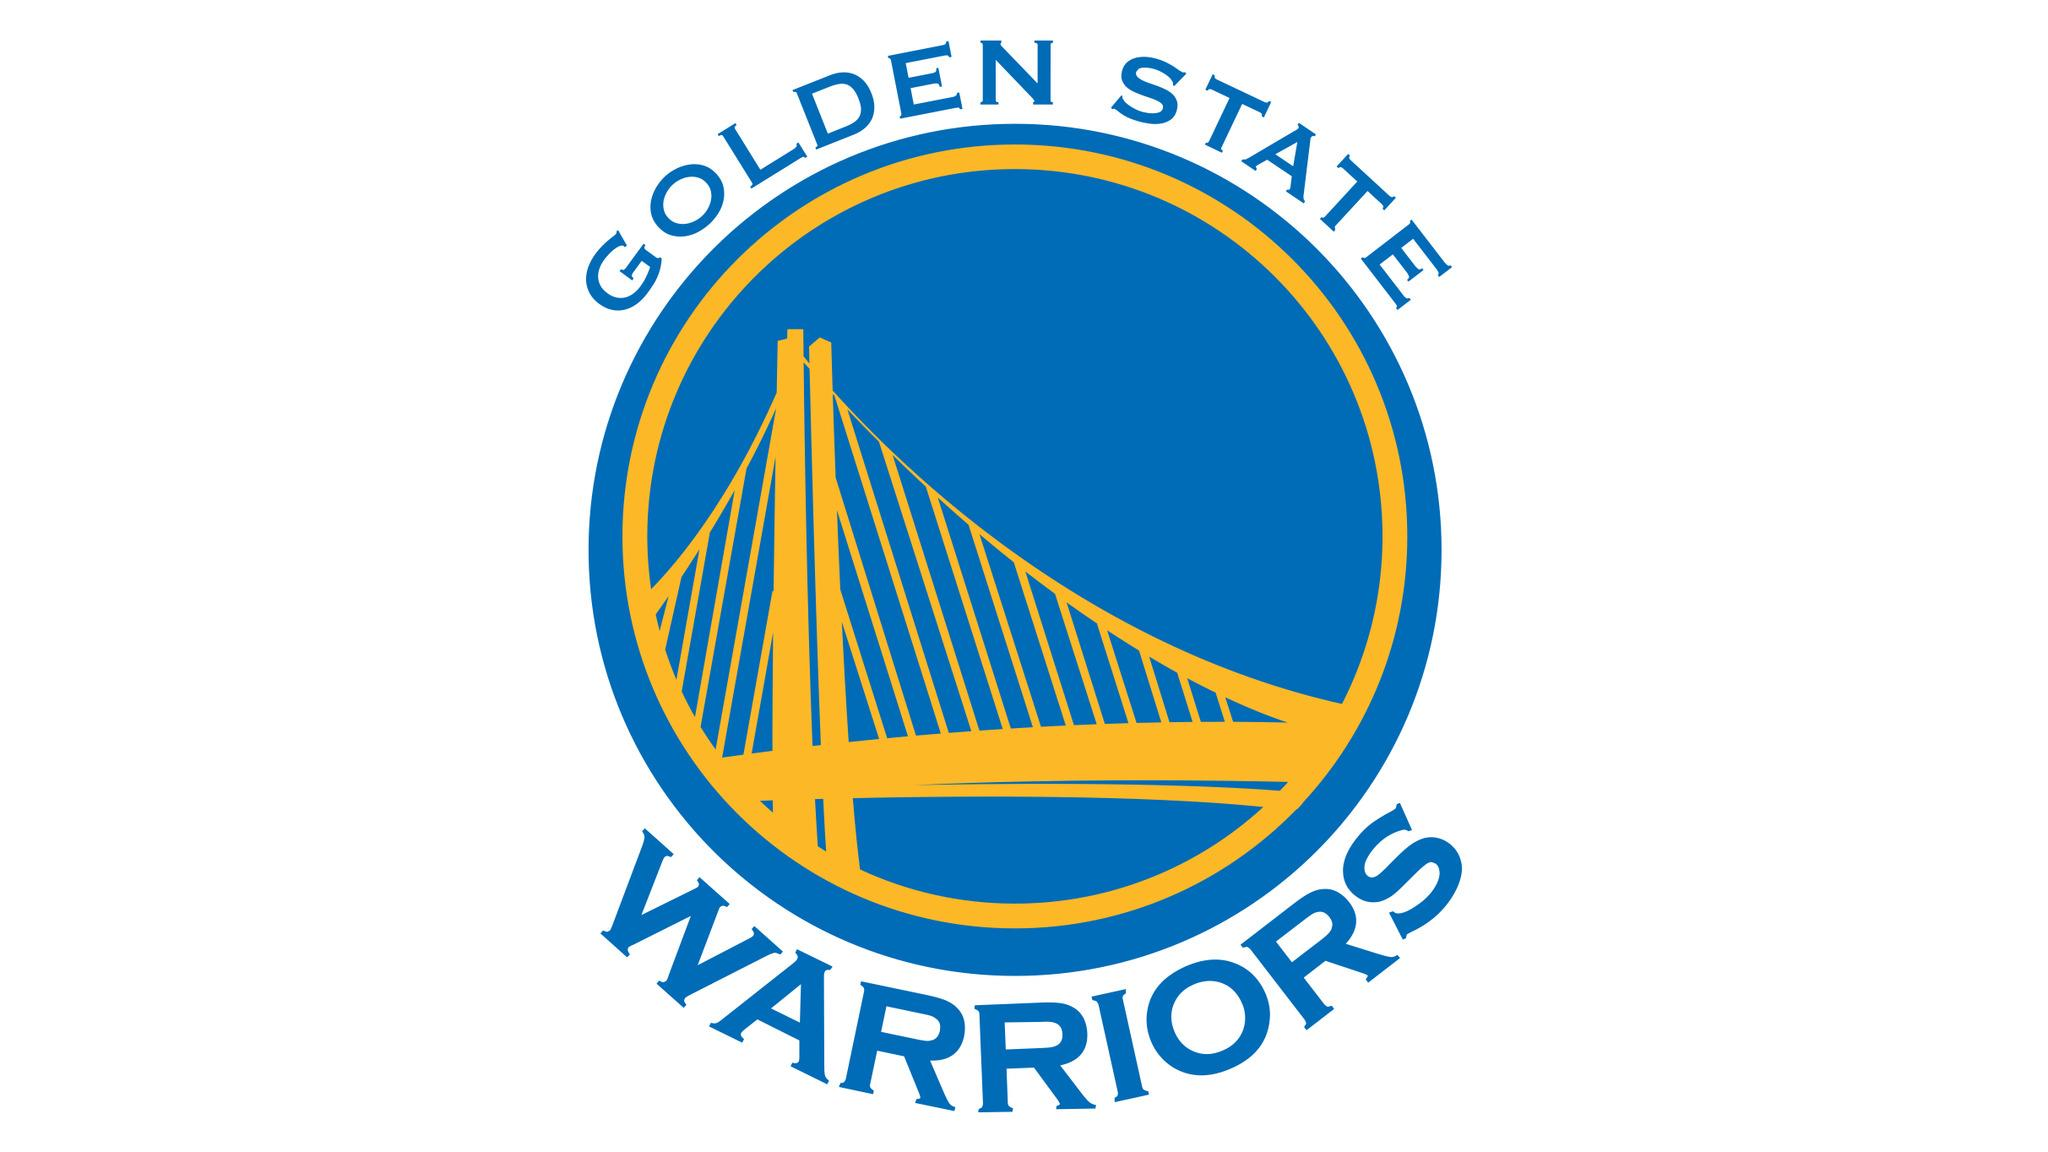 Golden State Warriors vs. Los Angeles Lakers at Oracle Arena